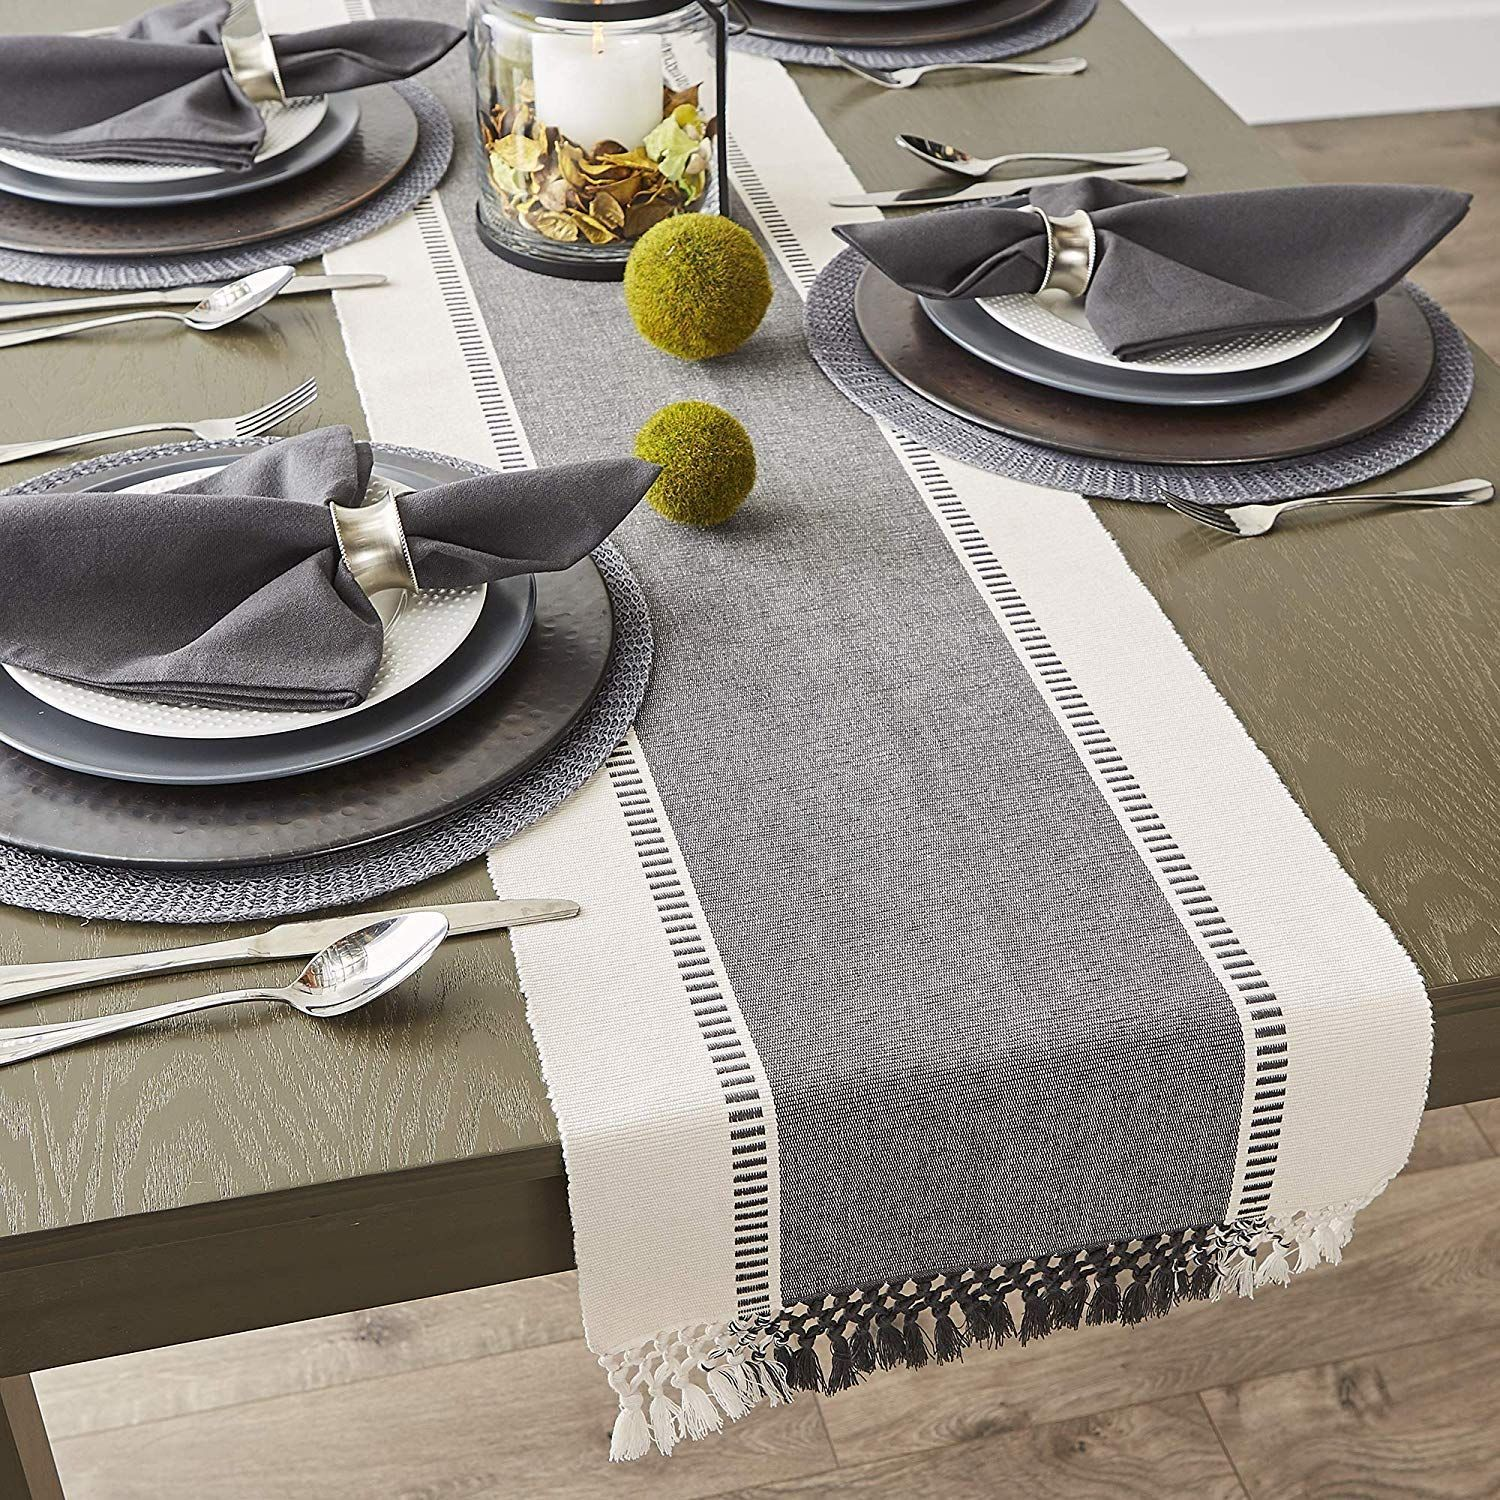 Table Runner How To Hygge Ideas Of How To Hygge Hygge Howtohygge Follow Chelsea Gentry Hygge Table Runners Game Room Tables Table Runner And Placemats